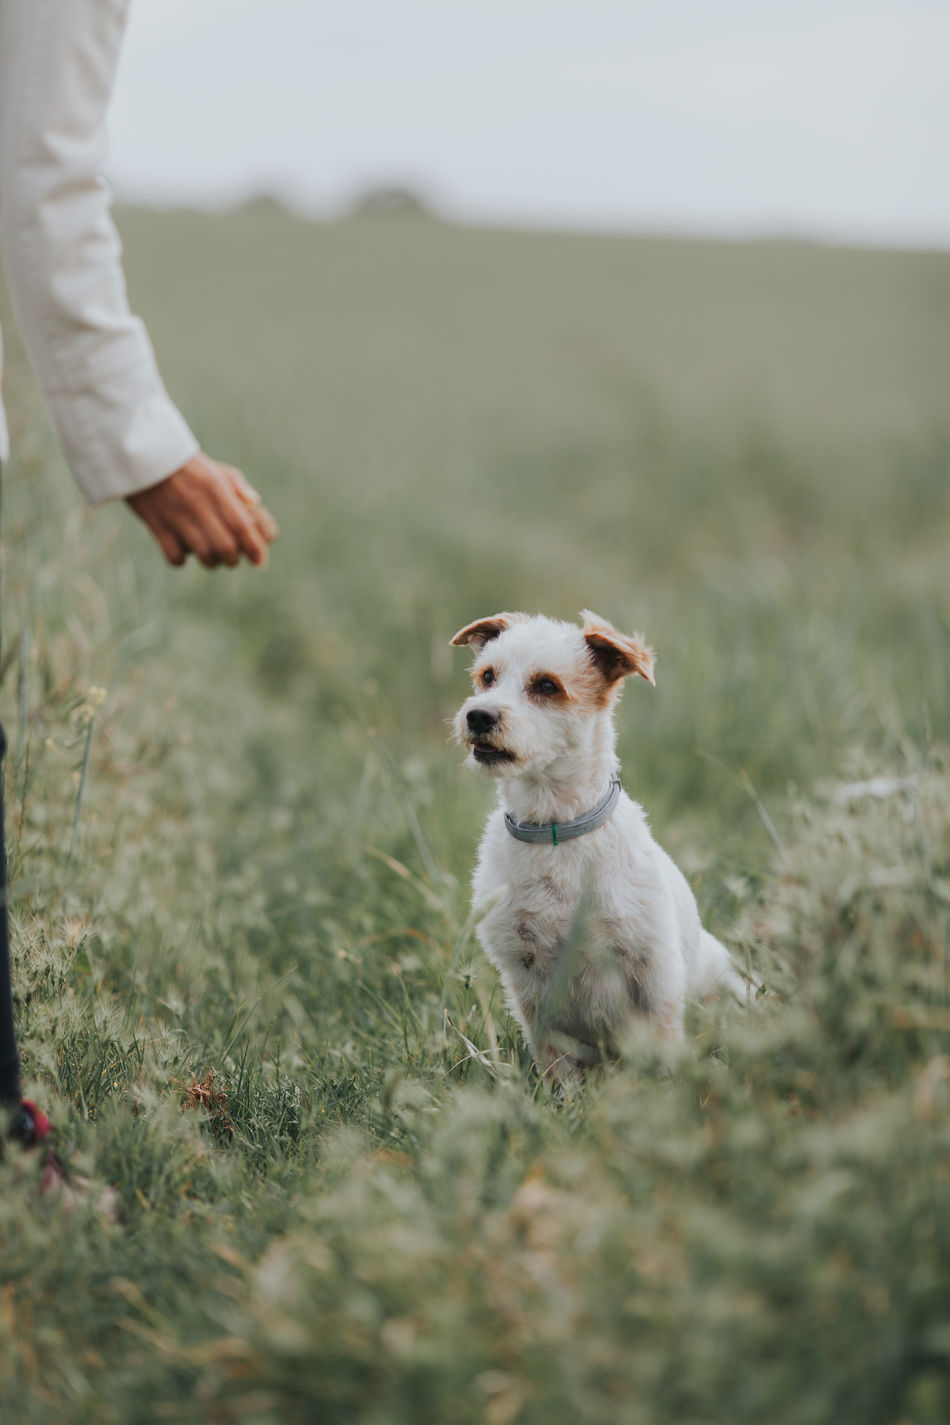 Animal Themes Day Dog Dog Playing Domestic Animals Field Focus Focus Object Friendship Grass Mammal One Animal One Person Pet Pets Pets Corner Pets Of Eyeem